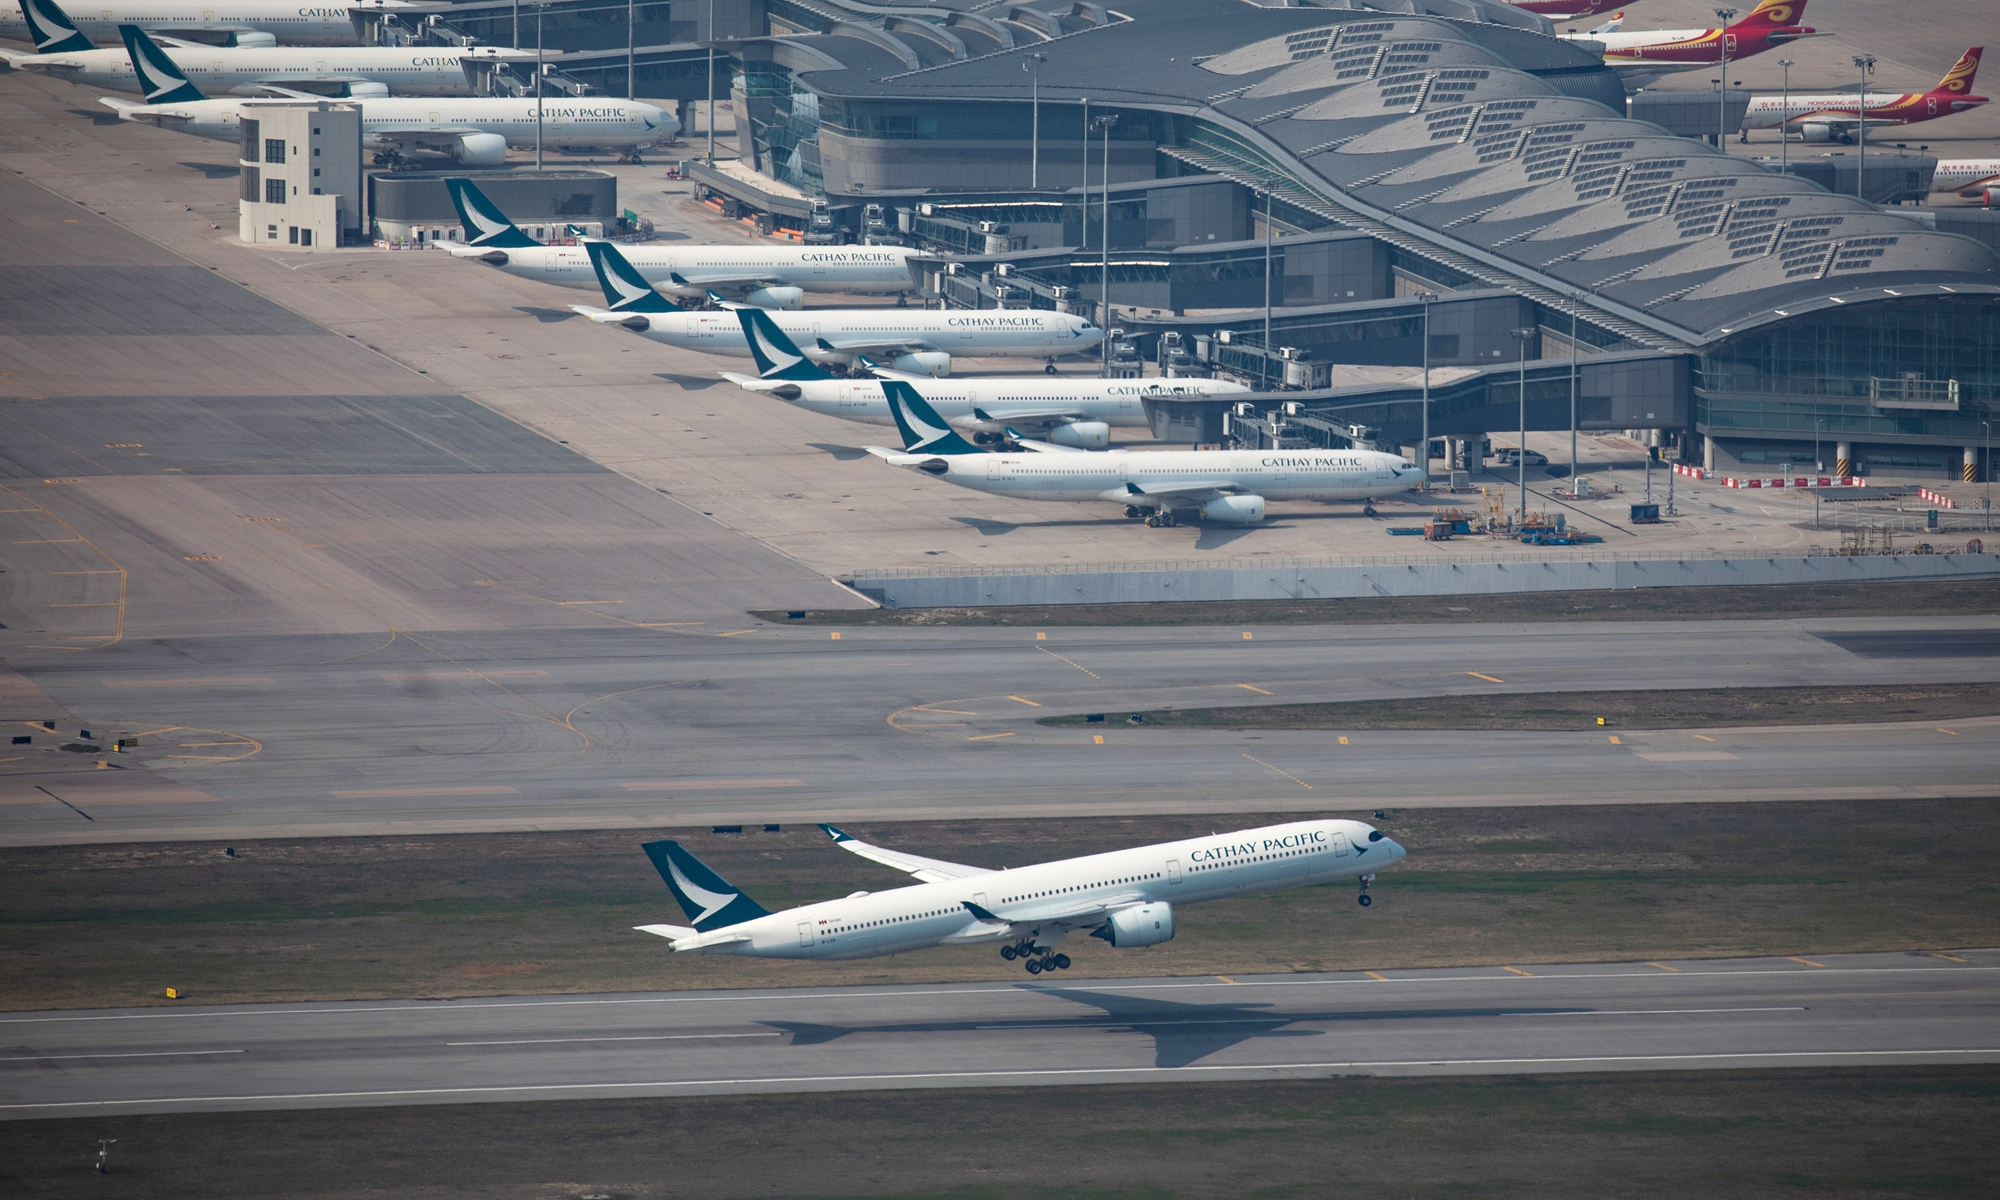 An aircraft operated by Cathay Pacific Airways takes off at the Hong Kong International Airport in Hong Kong, China, on March 9, 2021. Photo: VCG